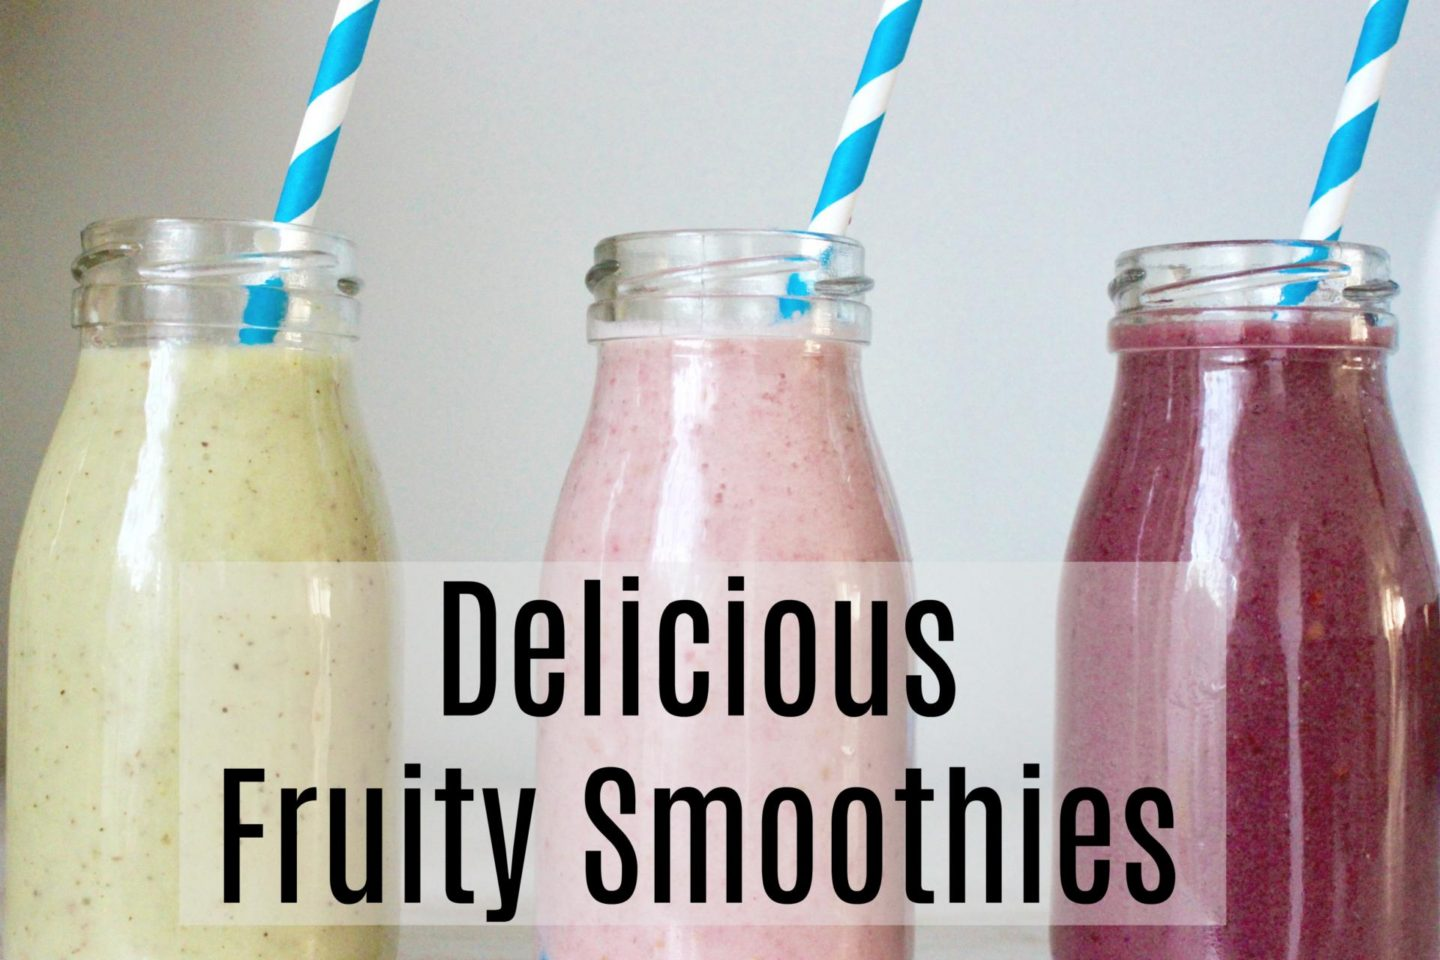 Delicious Fruit Smoothies With Vita Coco